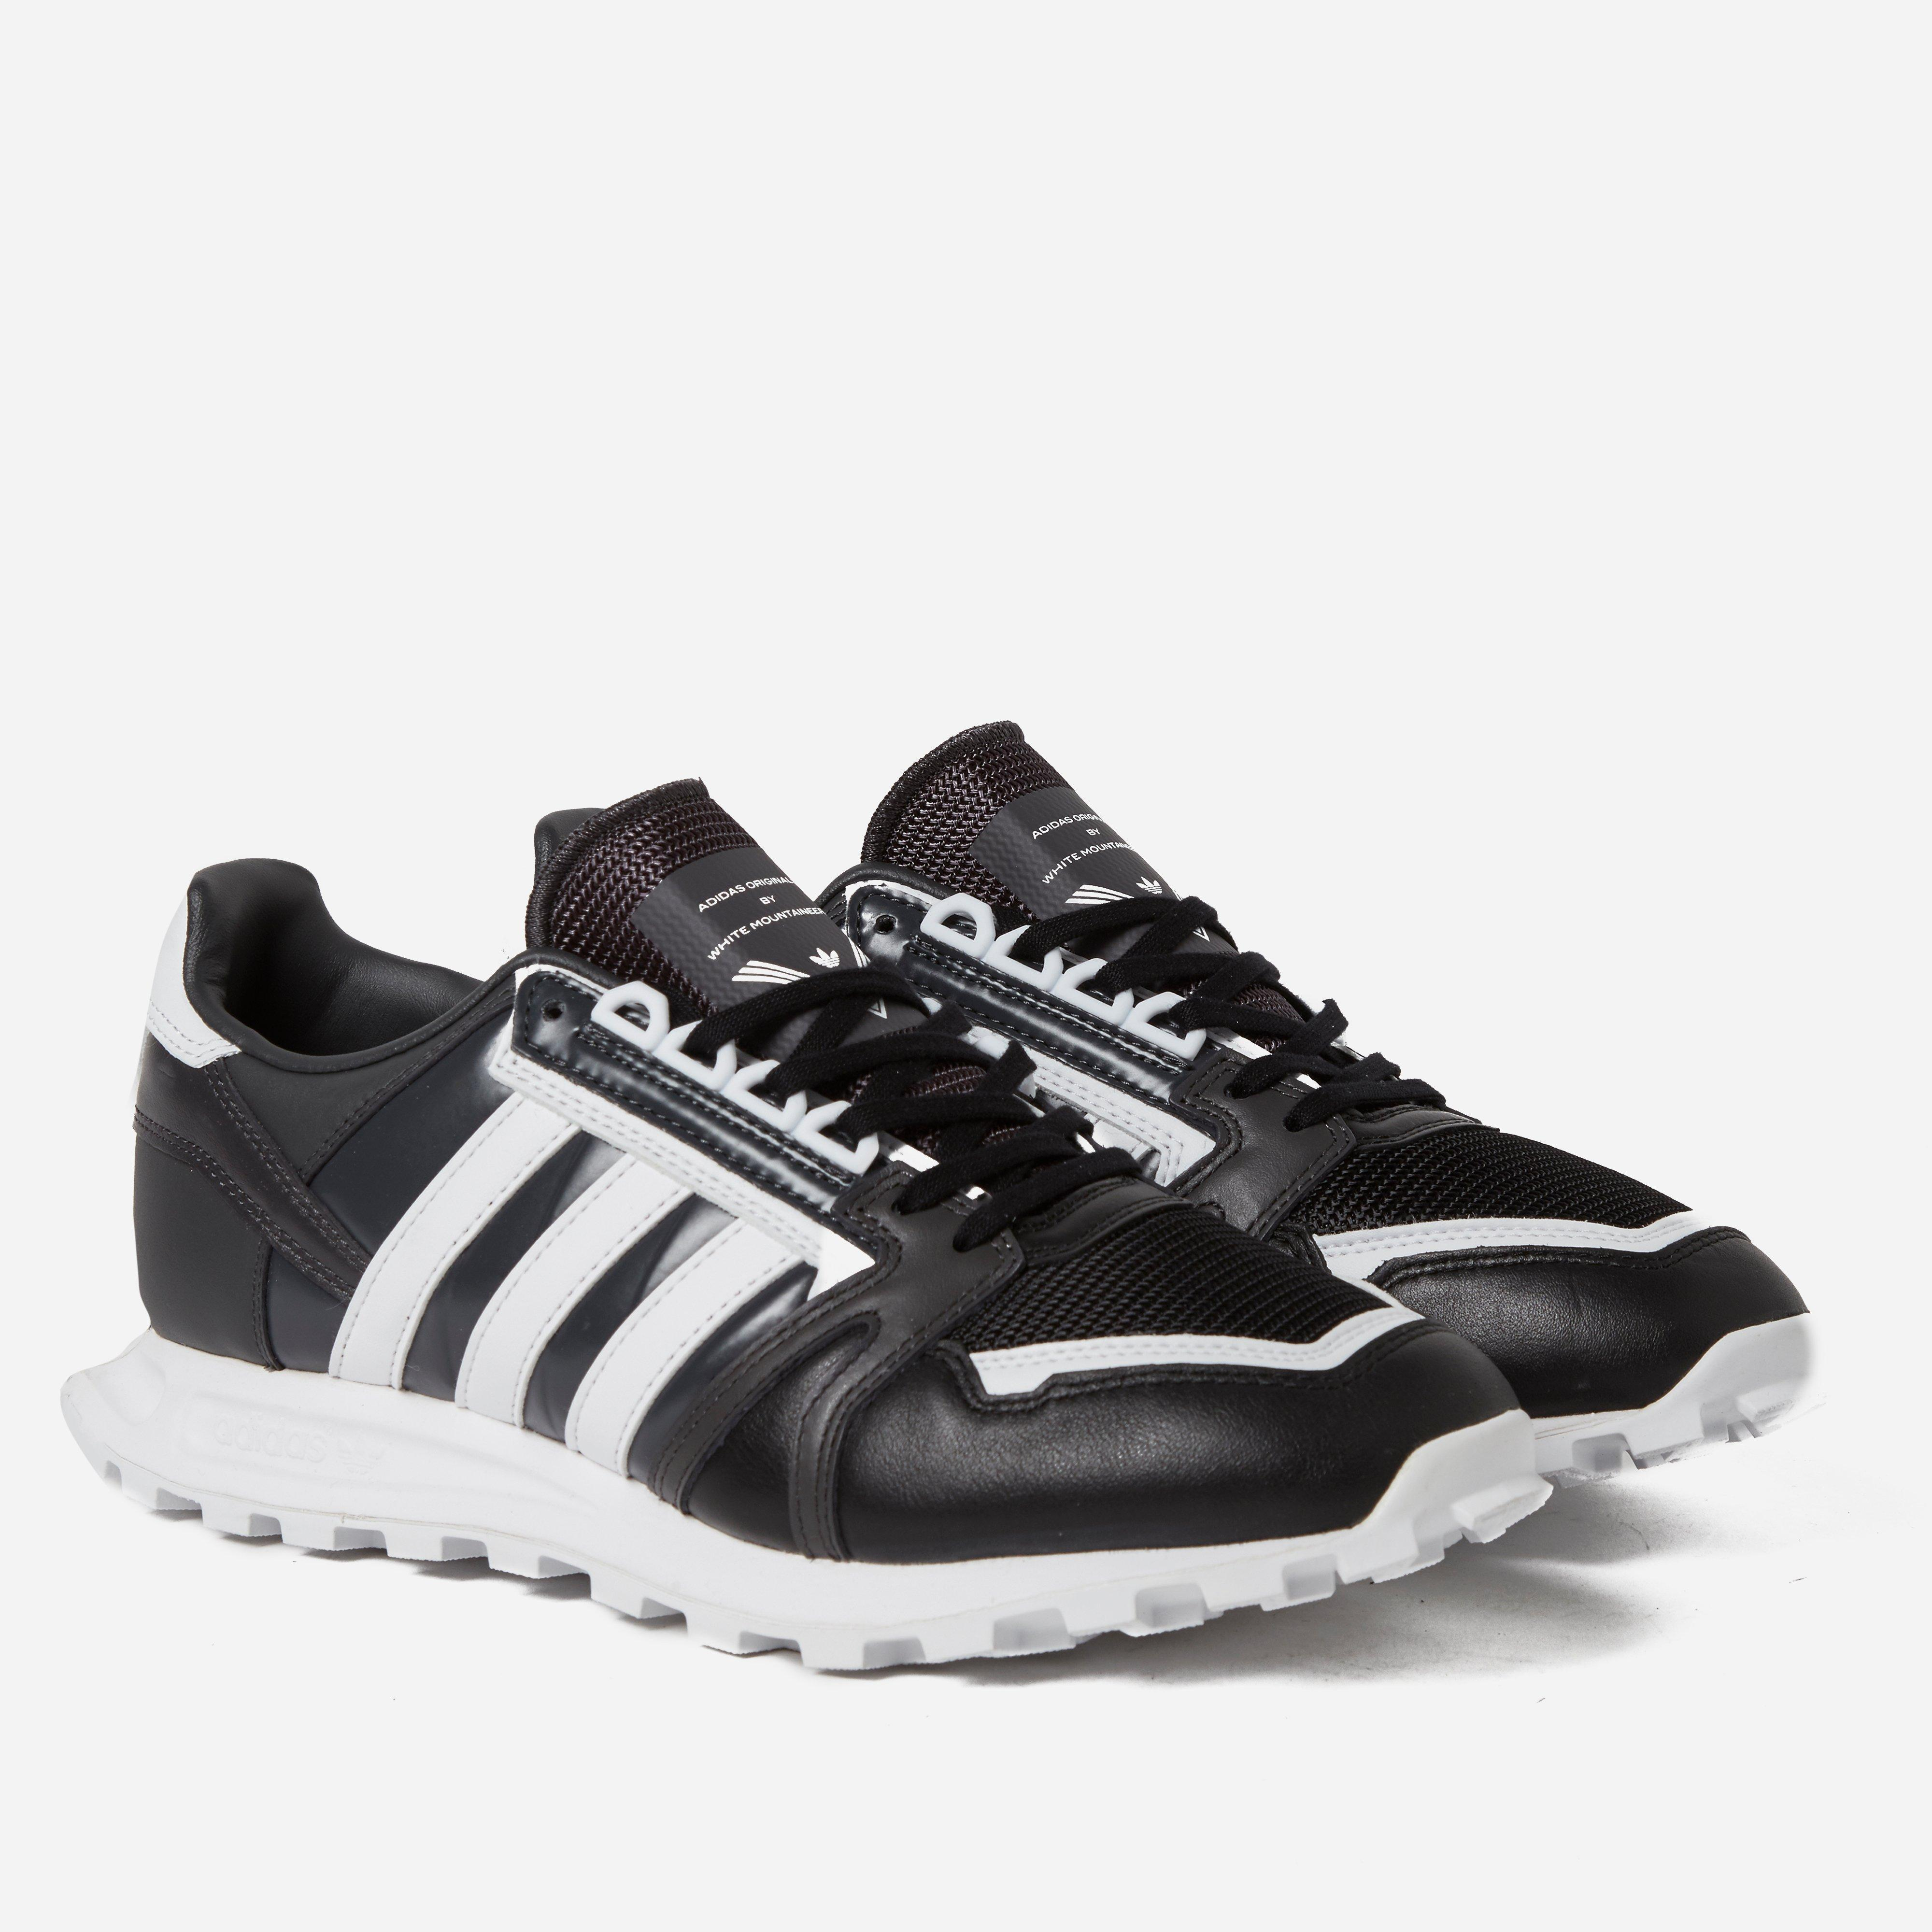 adidas Originals X White Mountaineering Racing 1